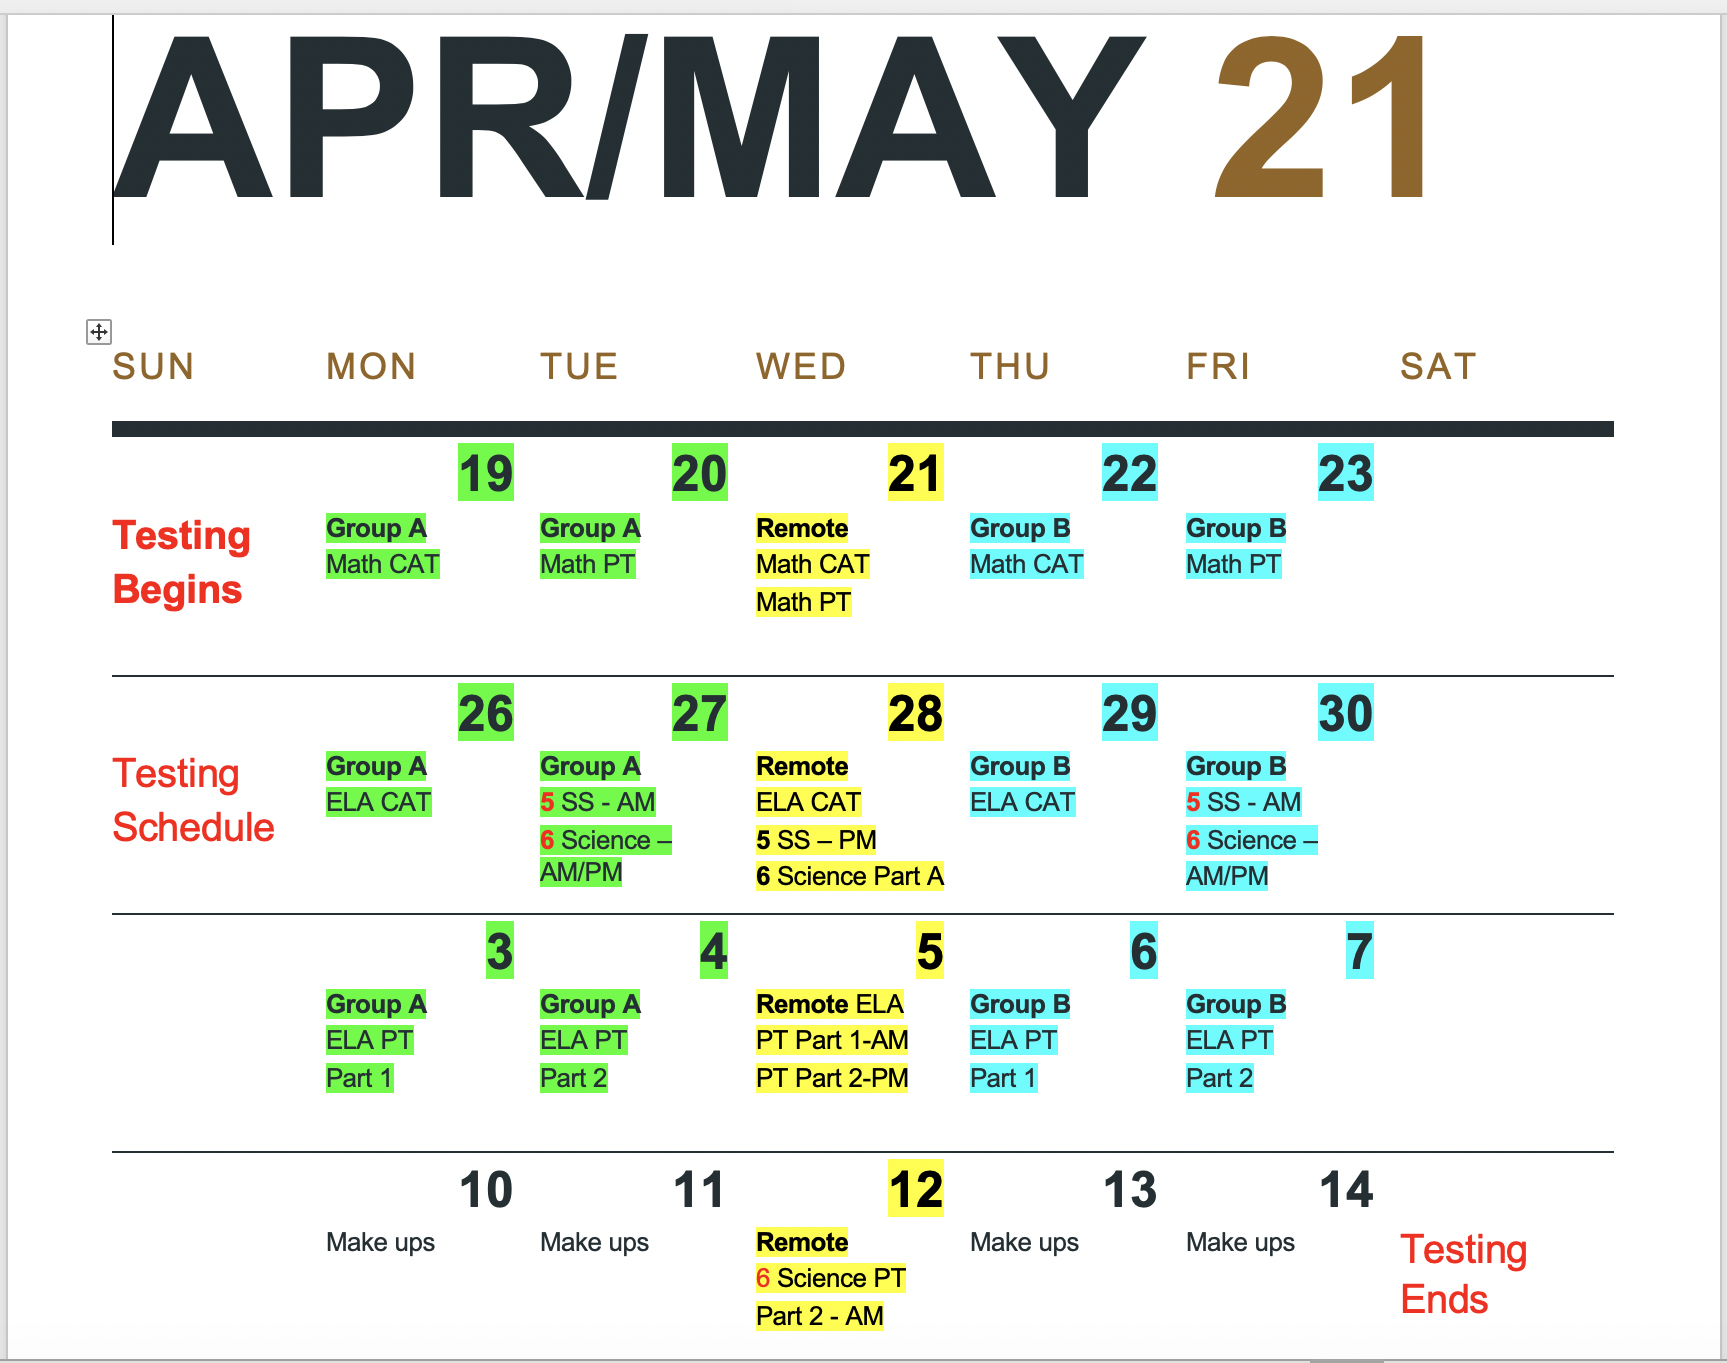 Parents and guardians, Next week begins ILEARN testing and is it very important that we get ALL students into the building on the following dates based upon your group.  All times will be 8:00 am to 3:00 pm, except for the 12th of May. Green is 'A' group students Yellow is remote students Blue is 'B' group students Please make sure students get a good night's sleep, have a water bottle, and are present for testing.